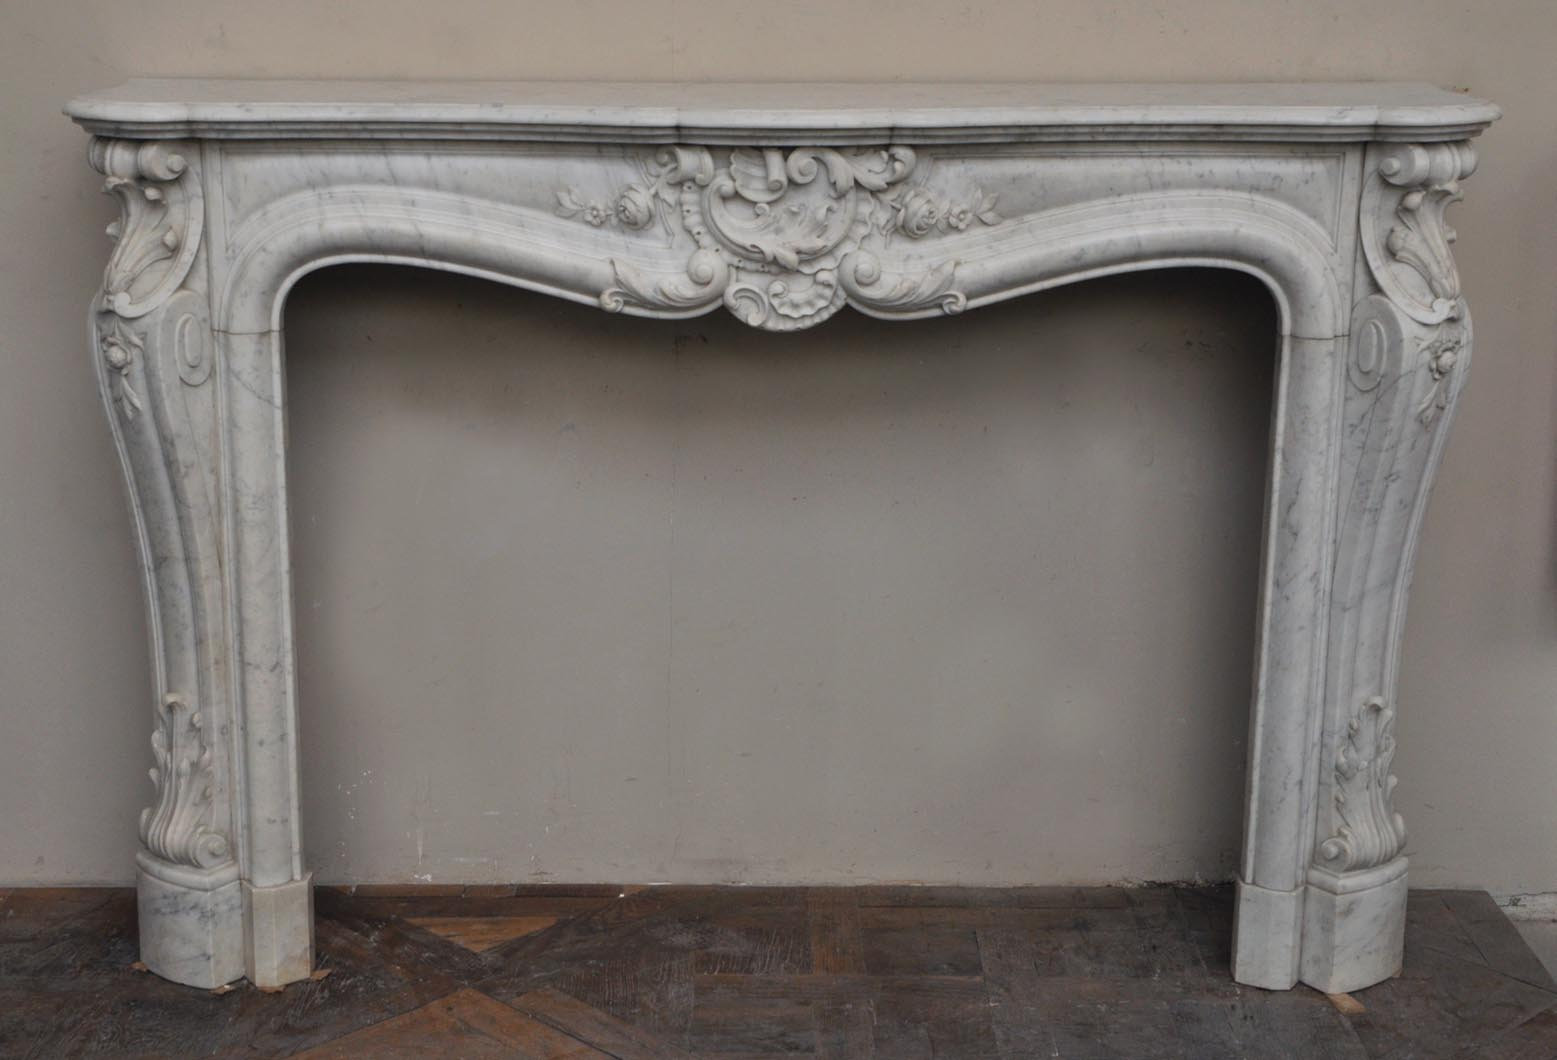 Large antique Louis XV style fireplace with roses decoration in Carrara marble - Reference 2401